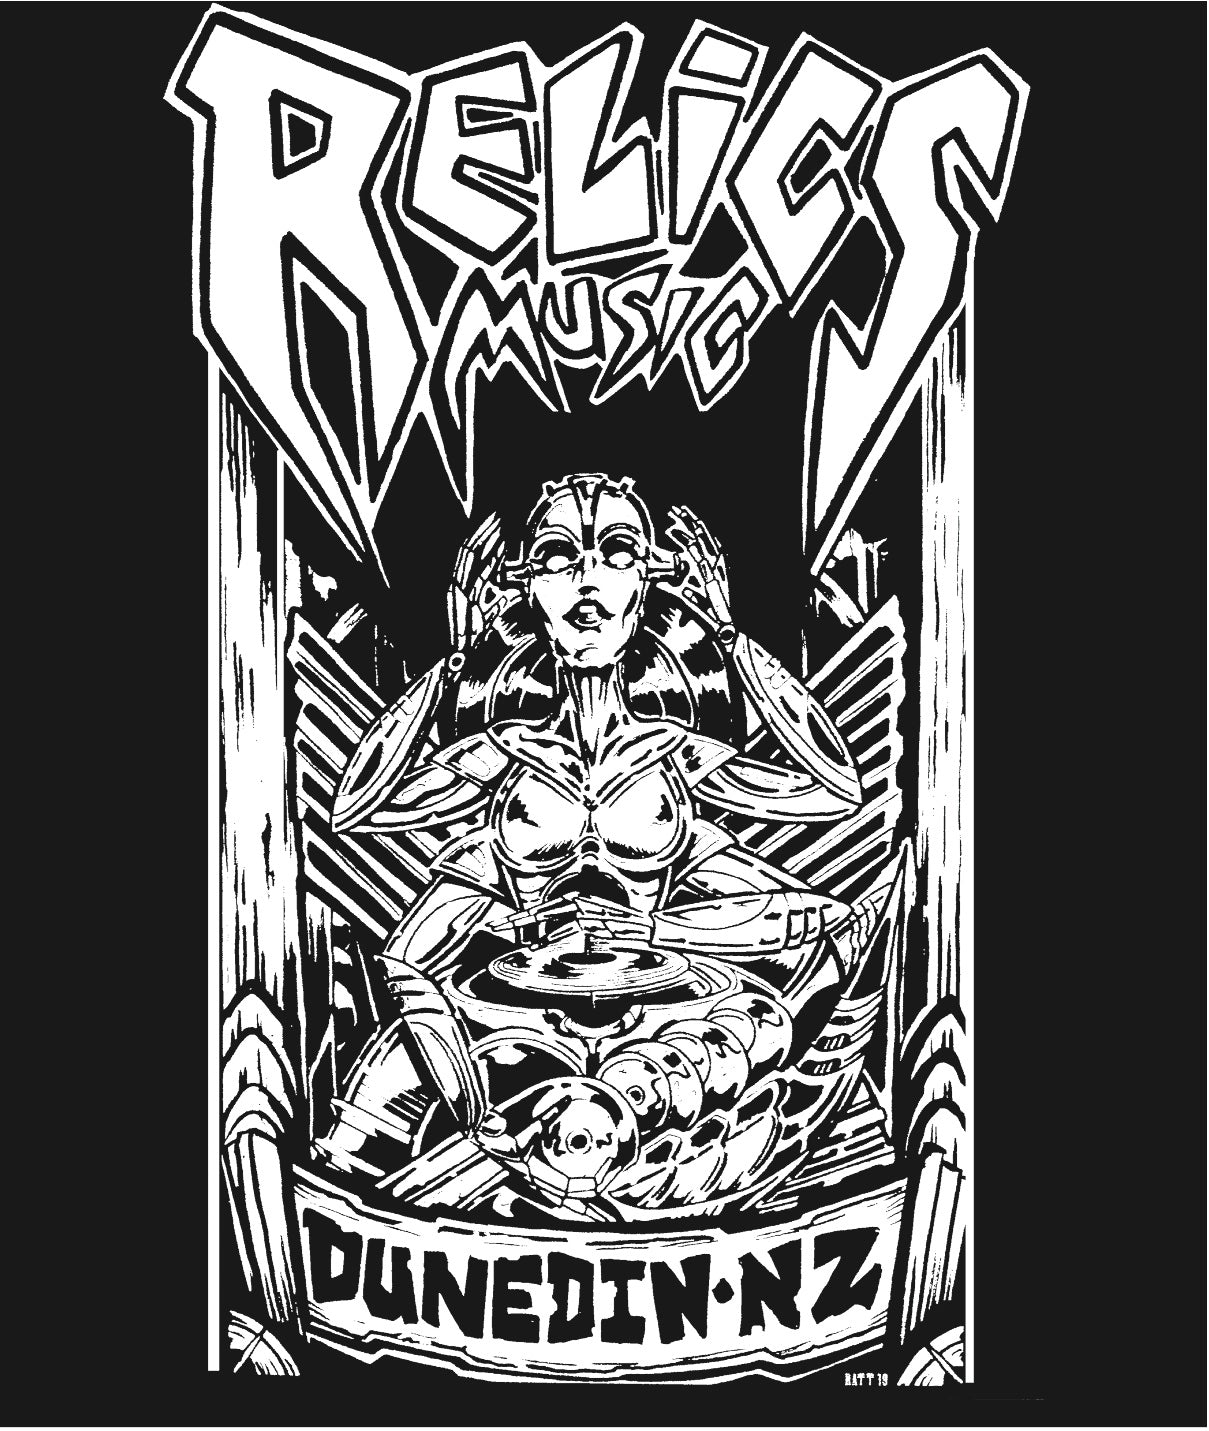 RELICS BLACK T SHIRT DESIGNED BY RATT 2020 XX-LARGE